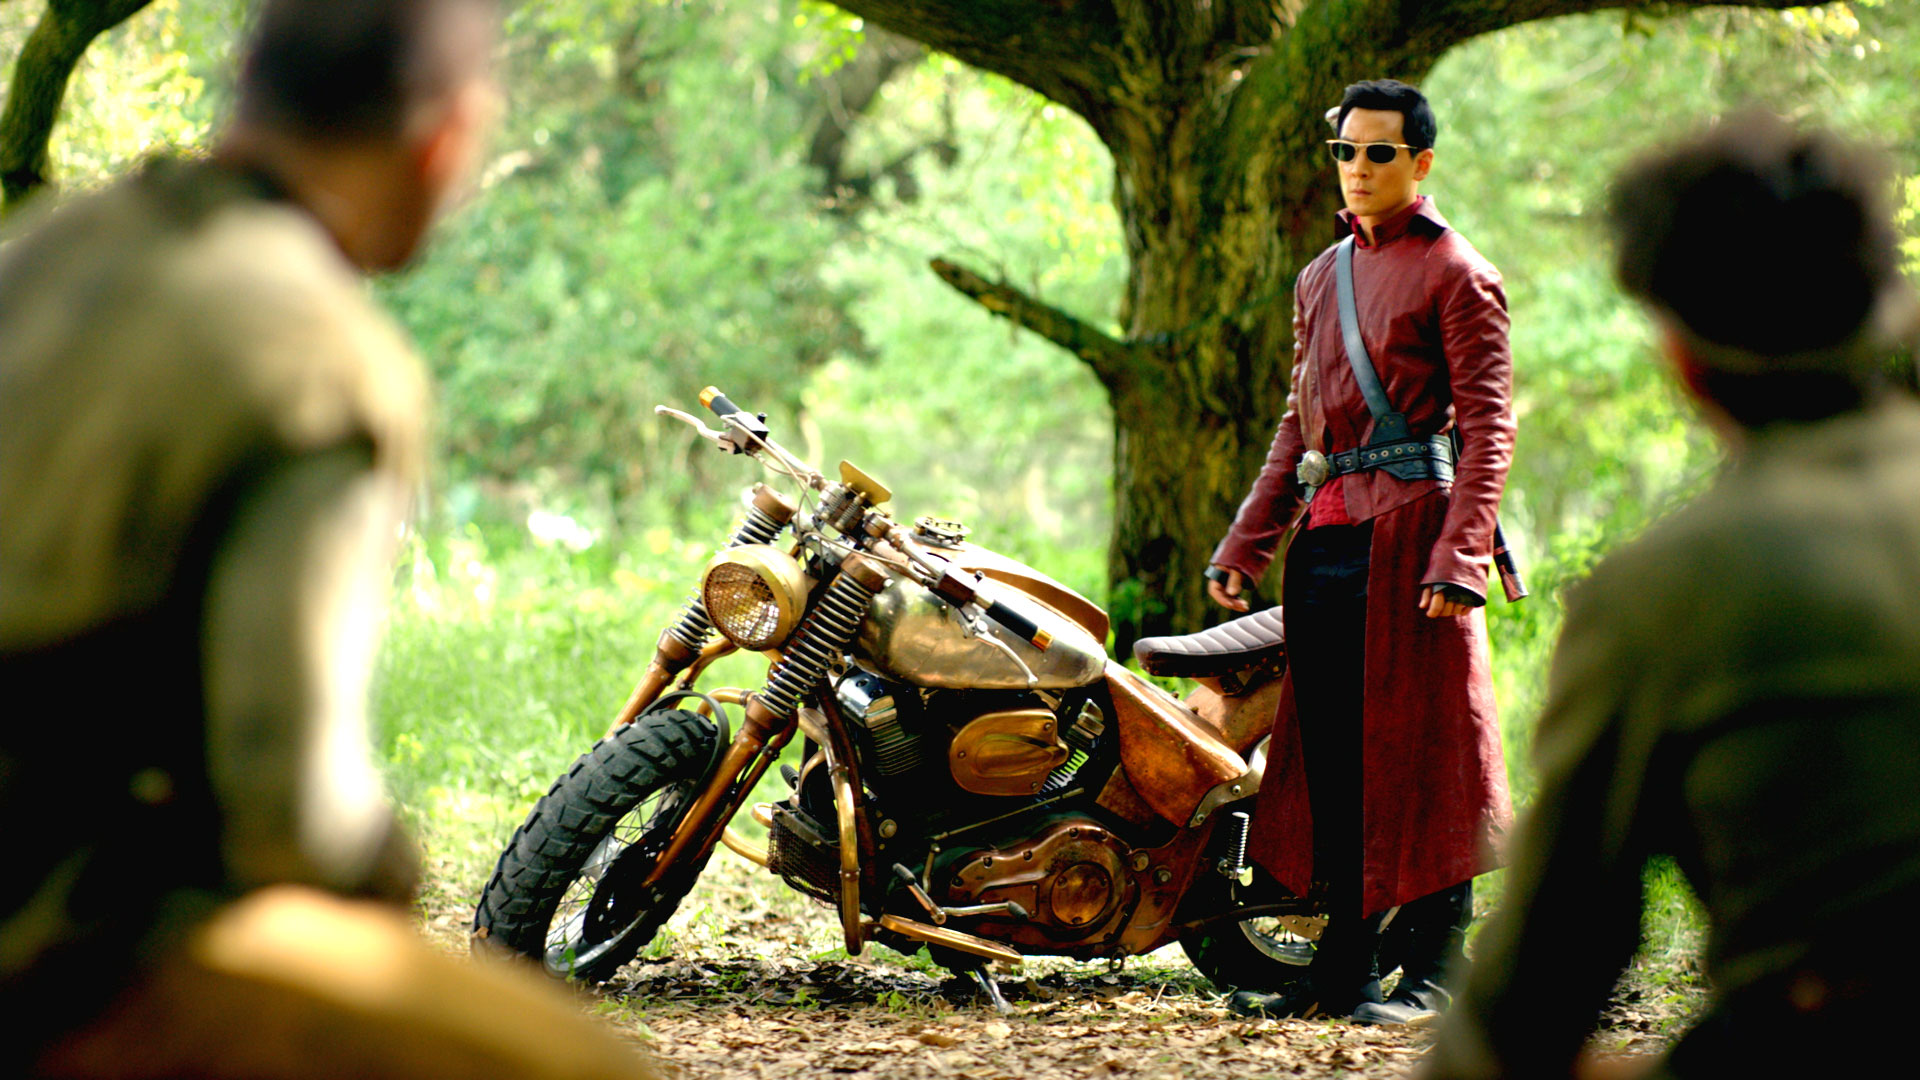 The Fall Bbc Wallpaper Video Extra Into The Badlands Sneak Peek Into The